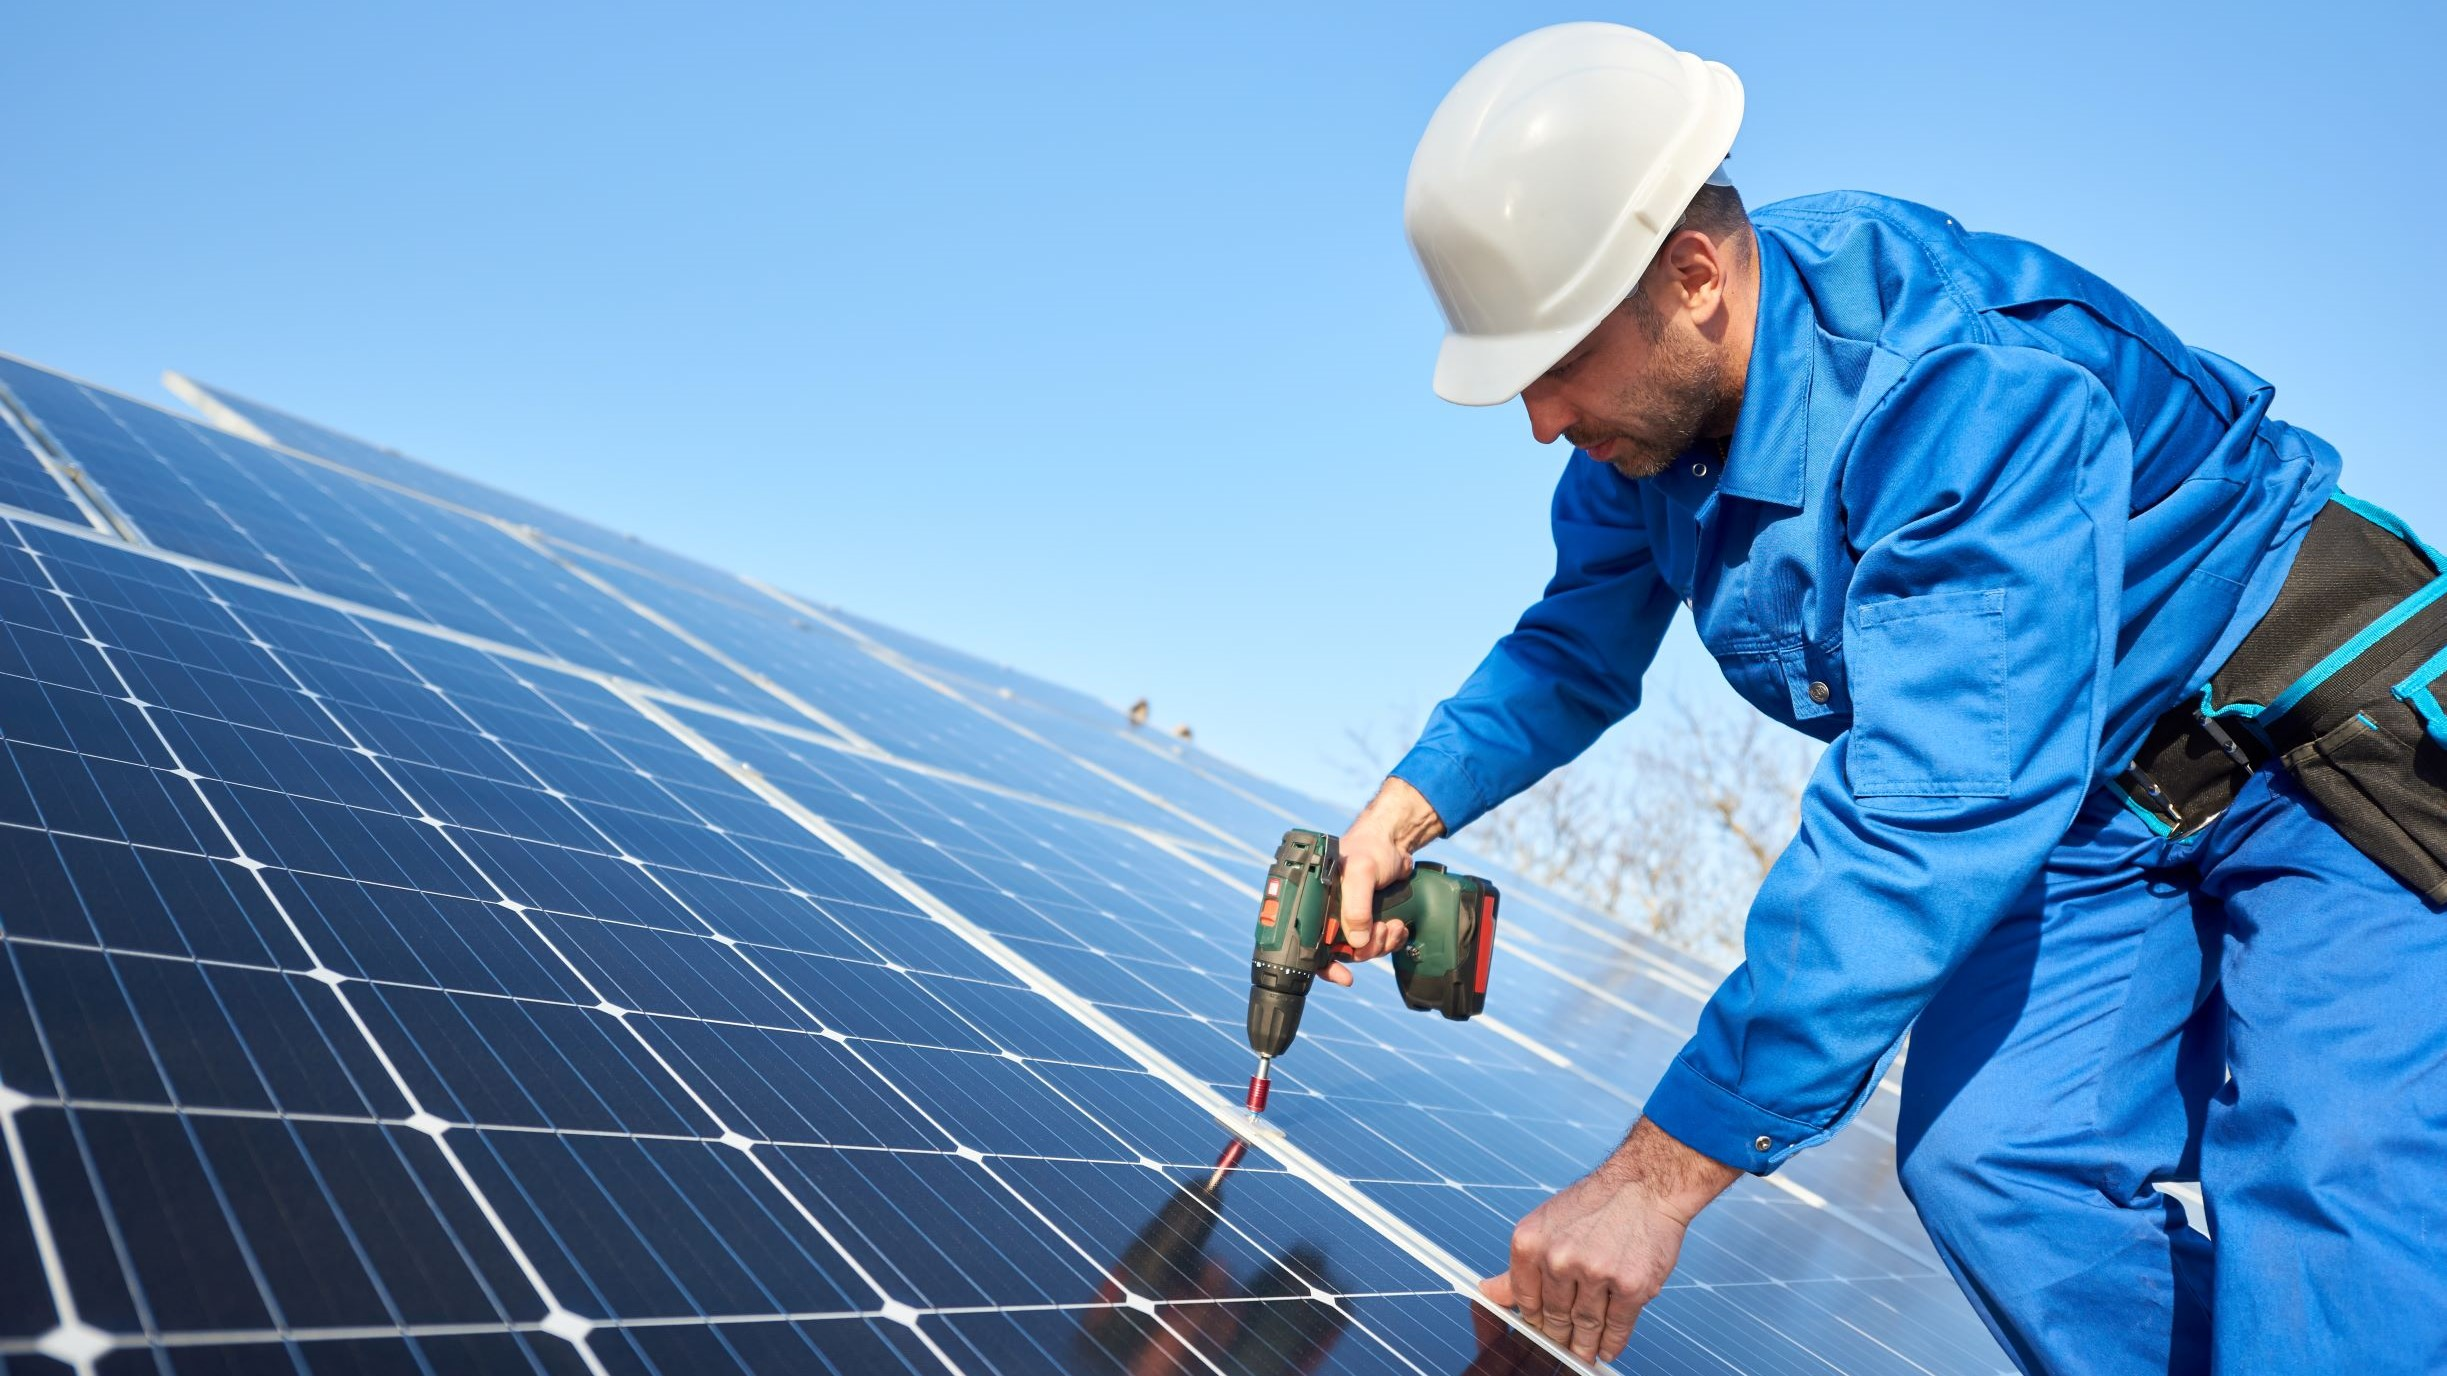 The Cost of Solar Panels: Is Solar Affordable for Me?